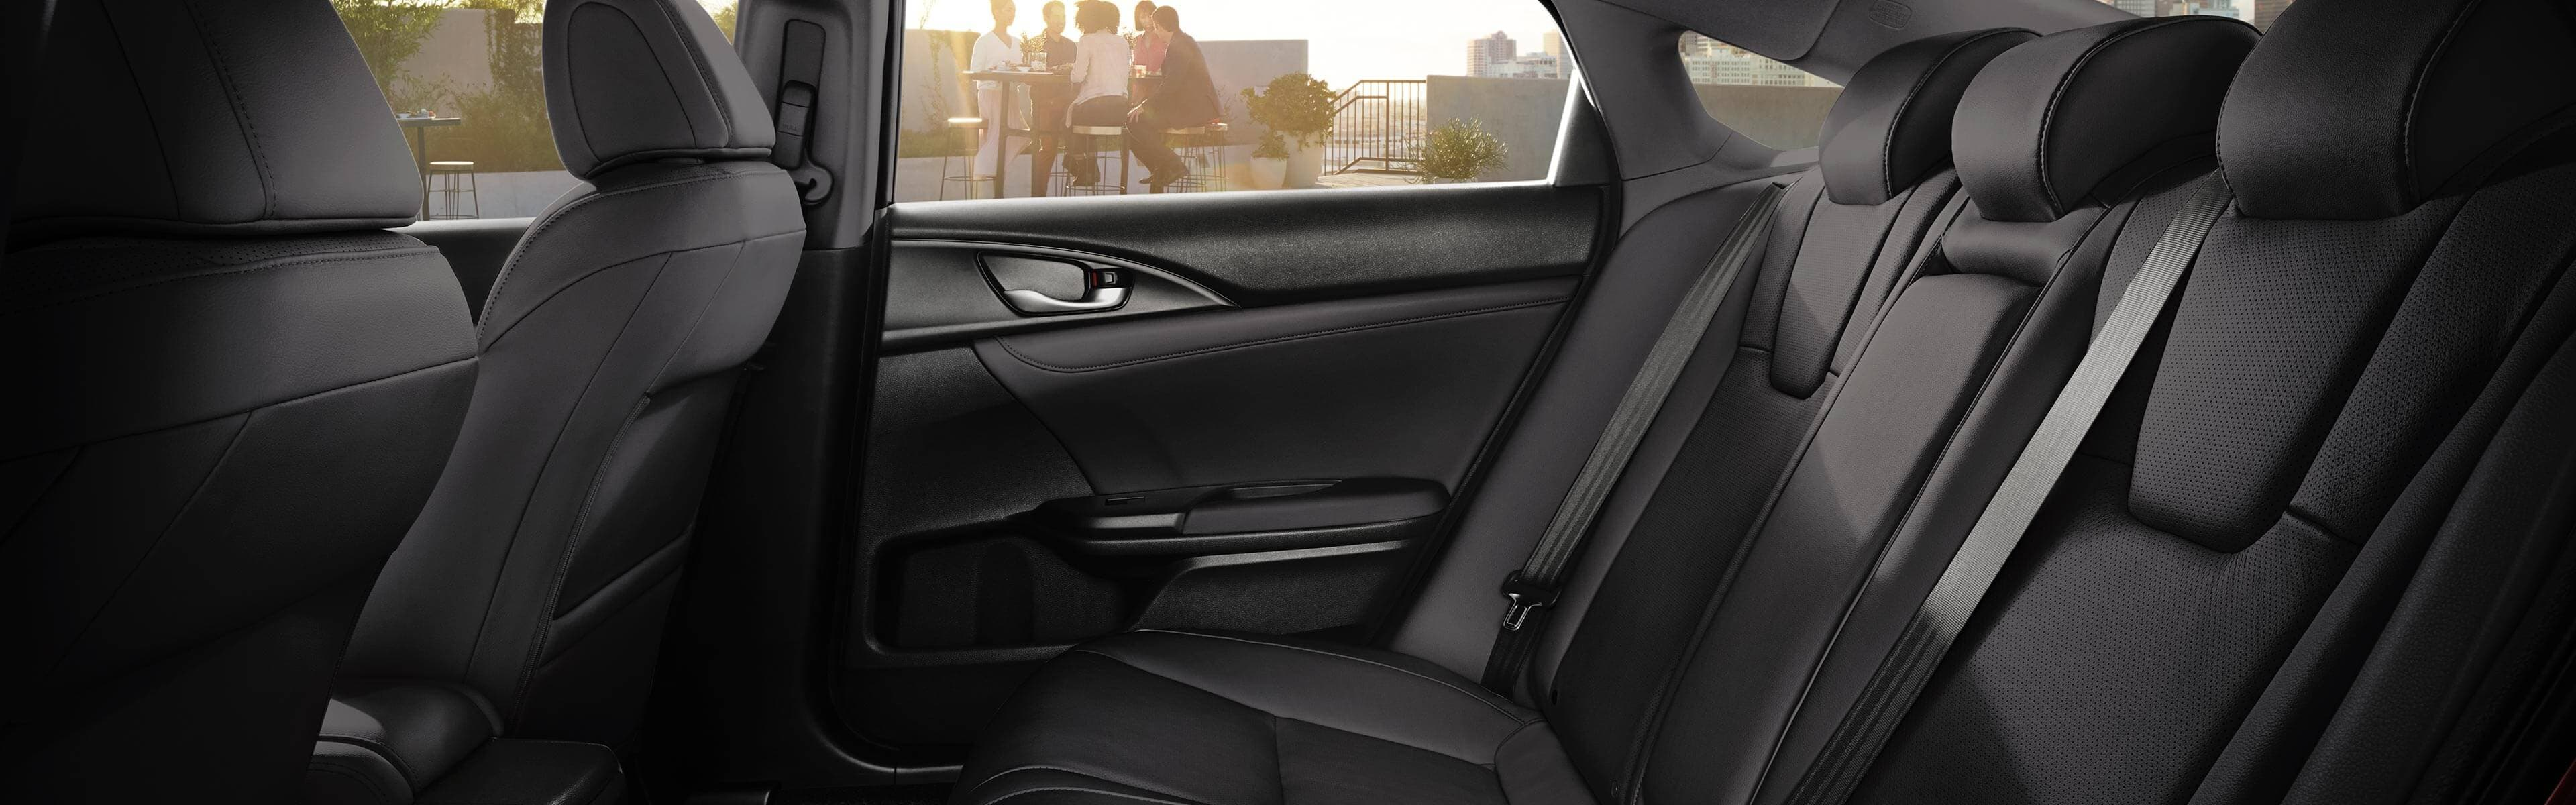 Rear seat interior of 2019 Honda Insight